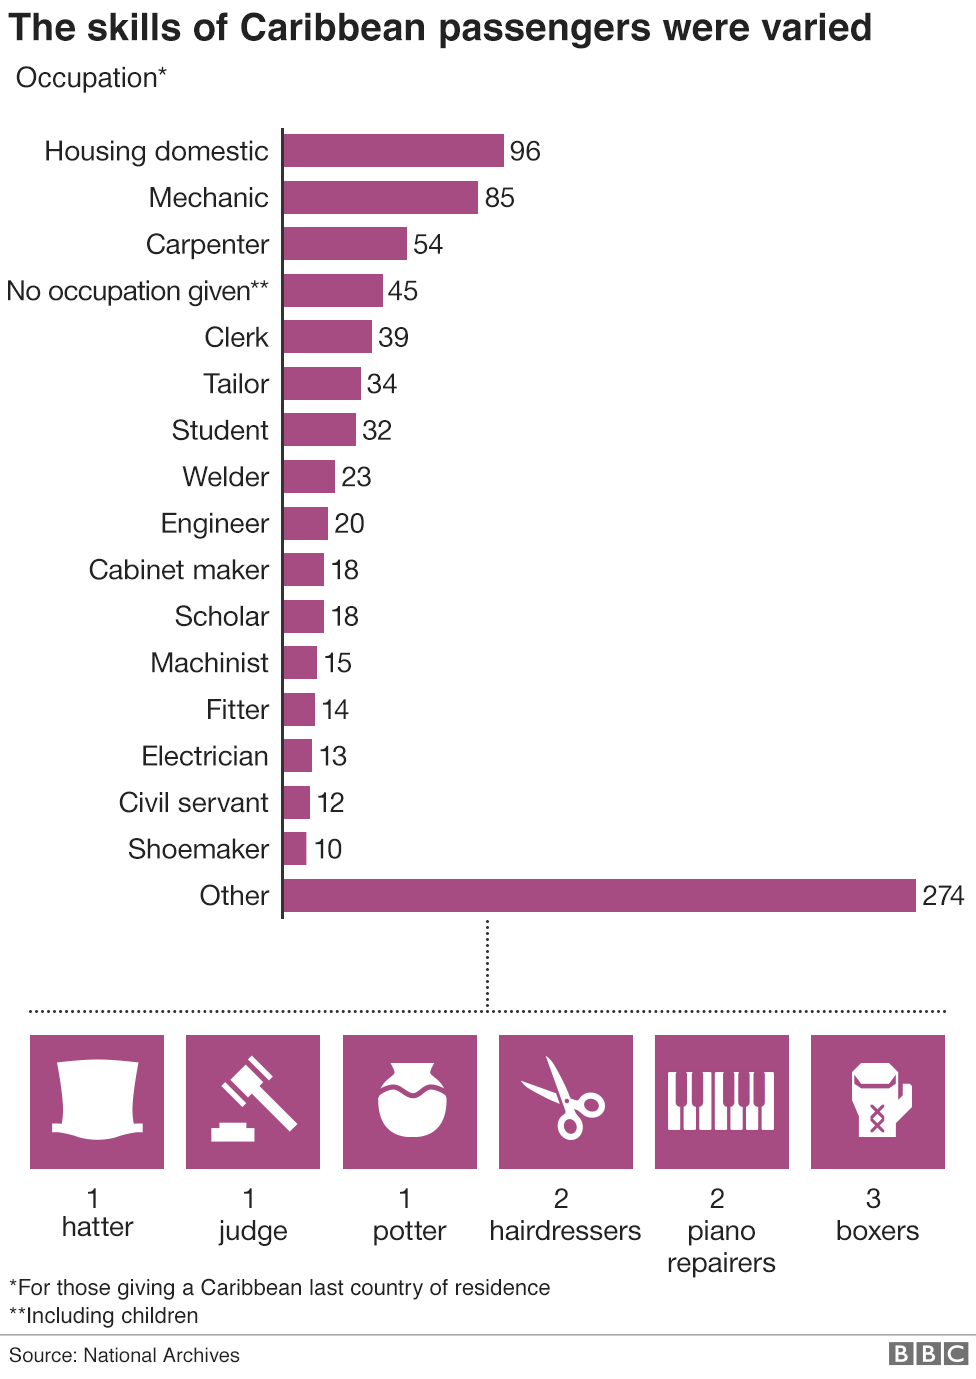 Chart showing the occupations of the Caribbean passengers of the Windrush